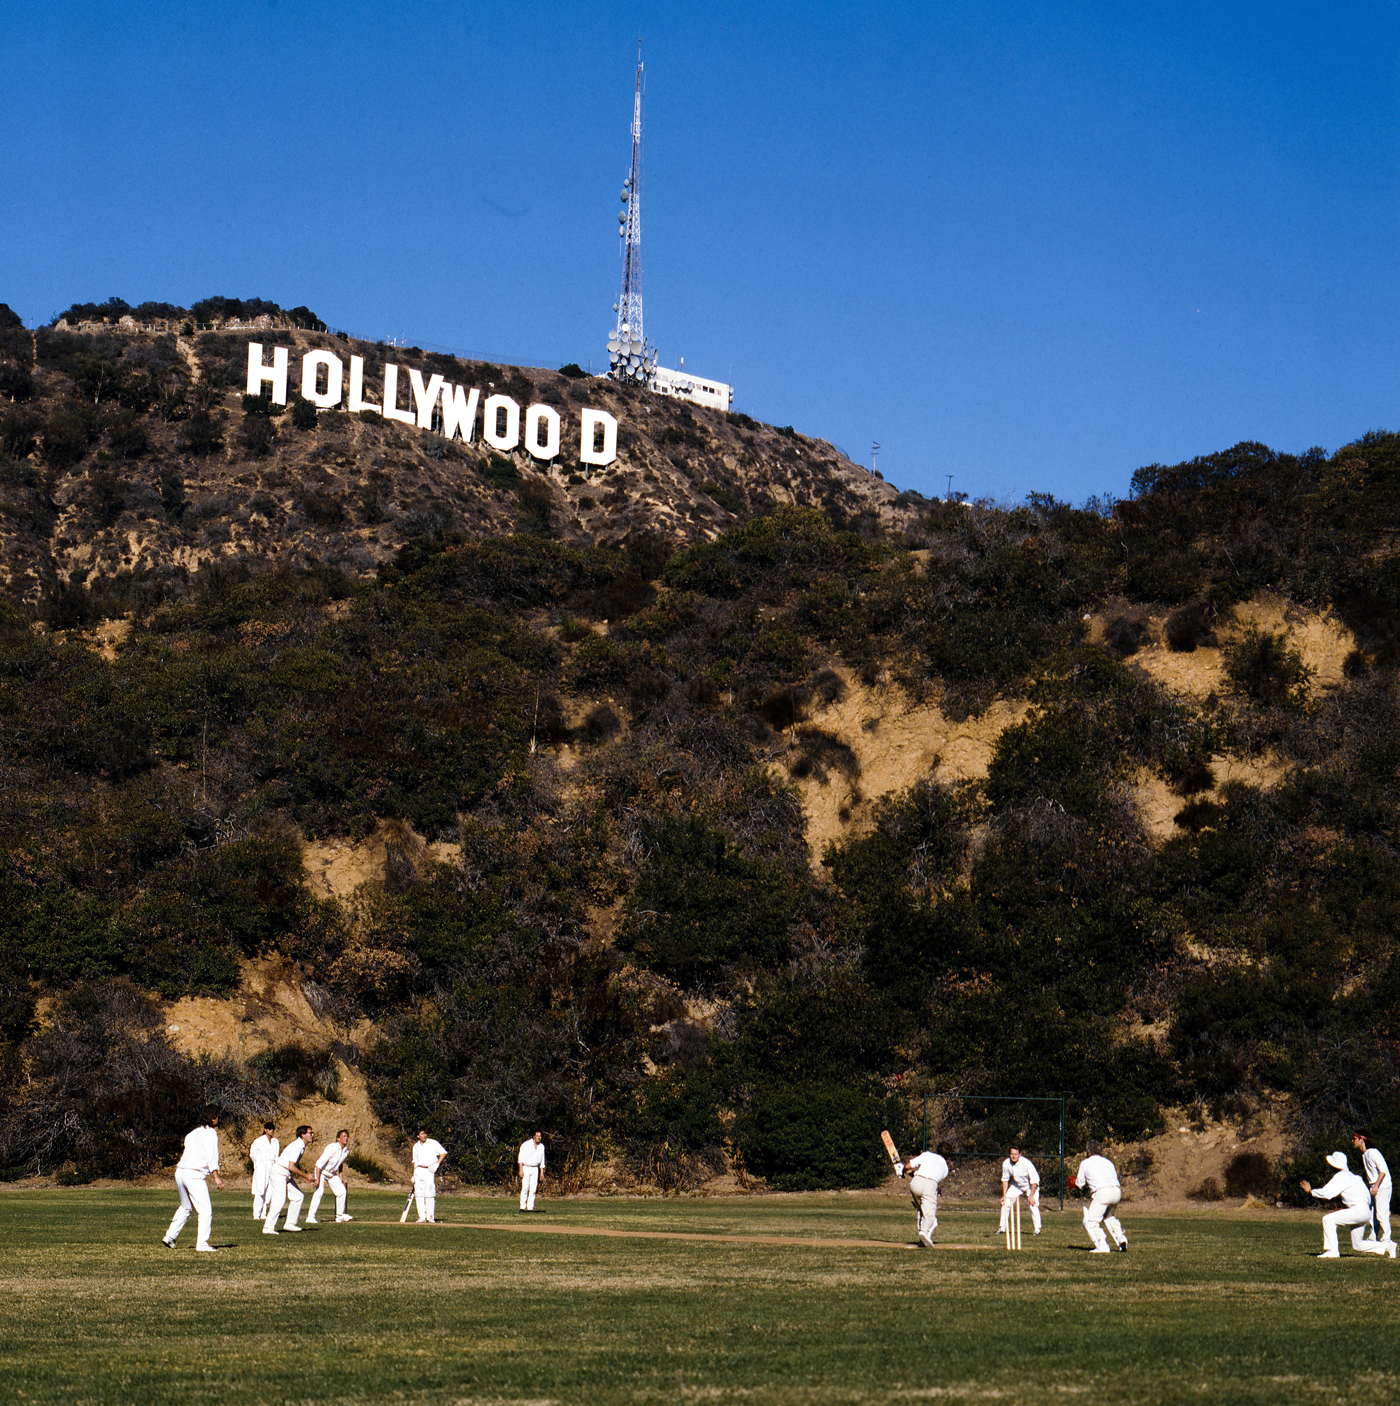 Expats play cricket with the Hollywood sign in the background